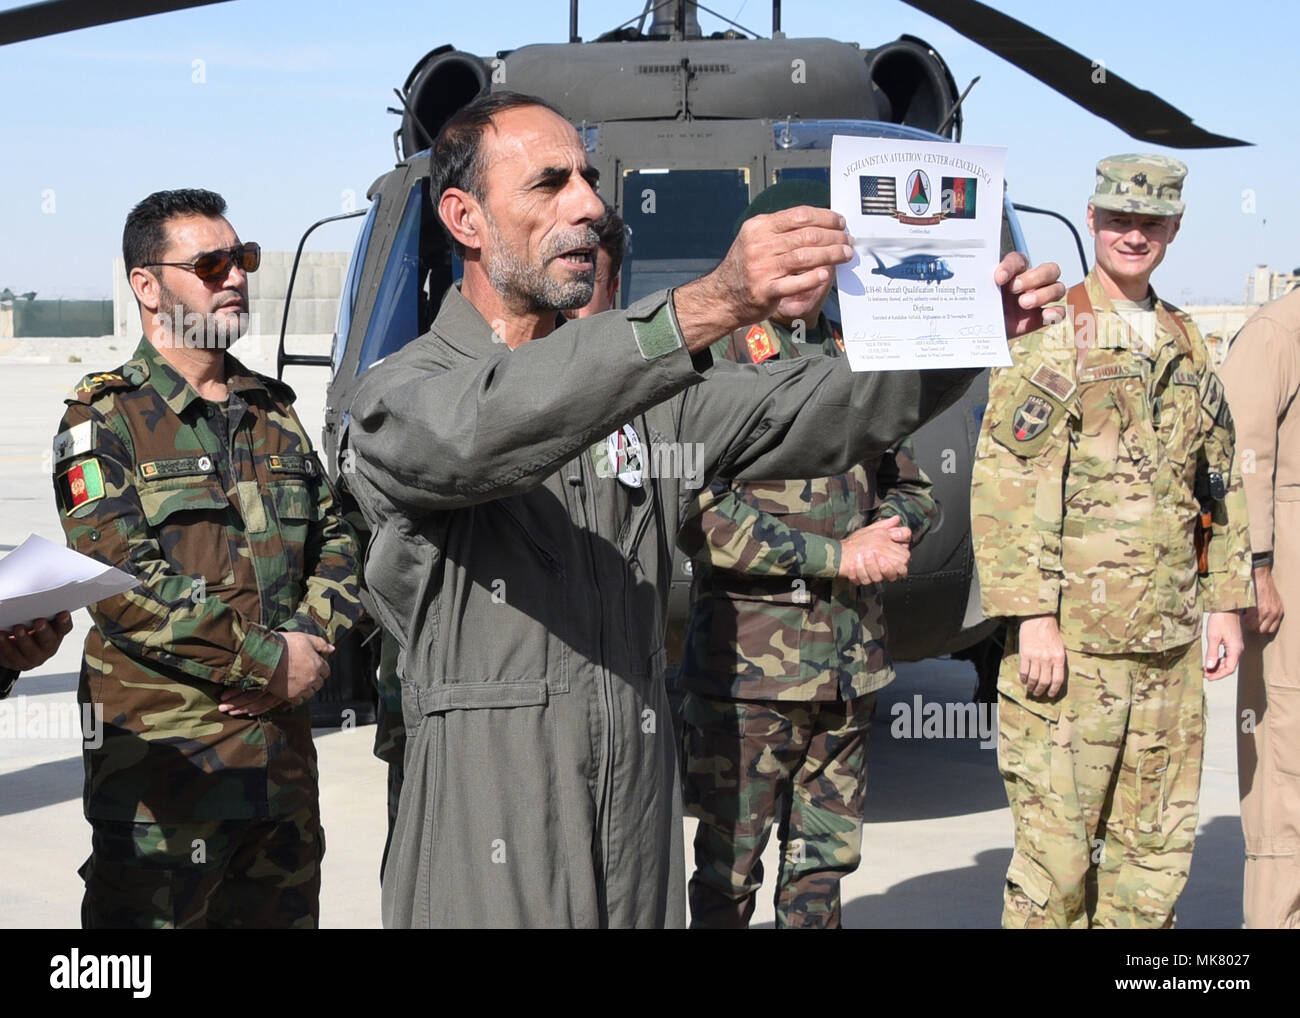 An Afghan Air Force pilot receives a certificate during a UH-60 Black Hawk Aircraft Qualification Training graduation ceremony at Kandahar Airfield, Afghanistan, Nov. 20, 2017. The pilot is one of six to be the first AAF Black Hawk pilots. The first AAF Black Hawk pilots are experienced aviators coming from a Mi-17 background. For future Black Hawk pilots the UH-60 flight training is approximately 16 weeks long, six weeks for Aircraft Qualification Training (AQT) and 10 weeks for Mission Qualification Training (MQT).  (U.S. Air Force photo by Tech. Sgt. Veronica Pierce) - Stock Image